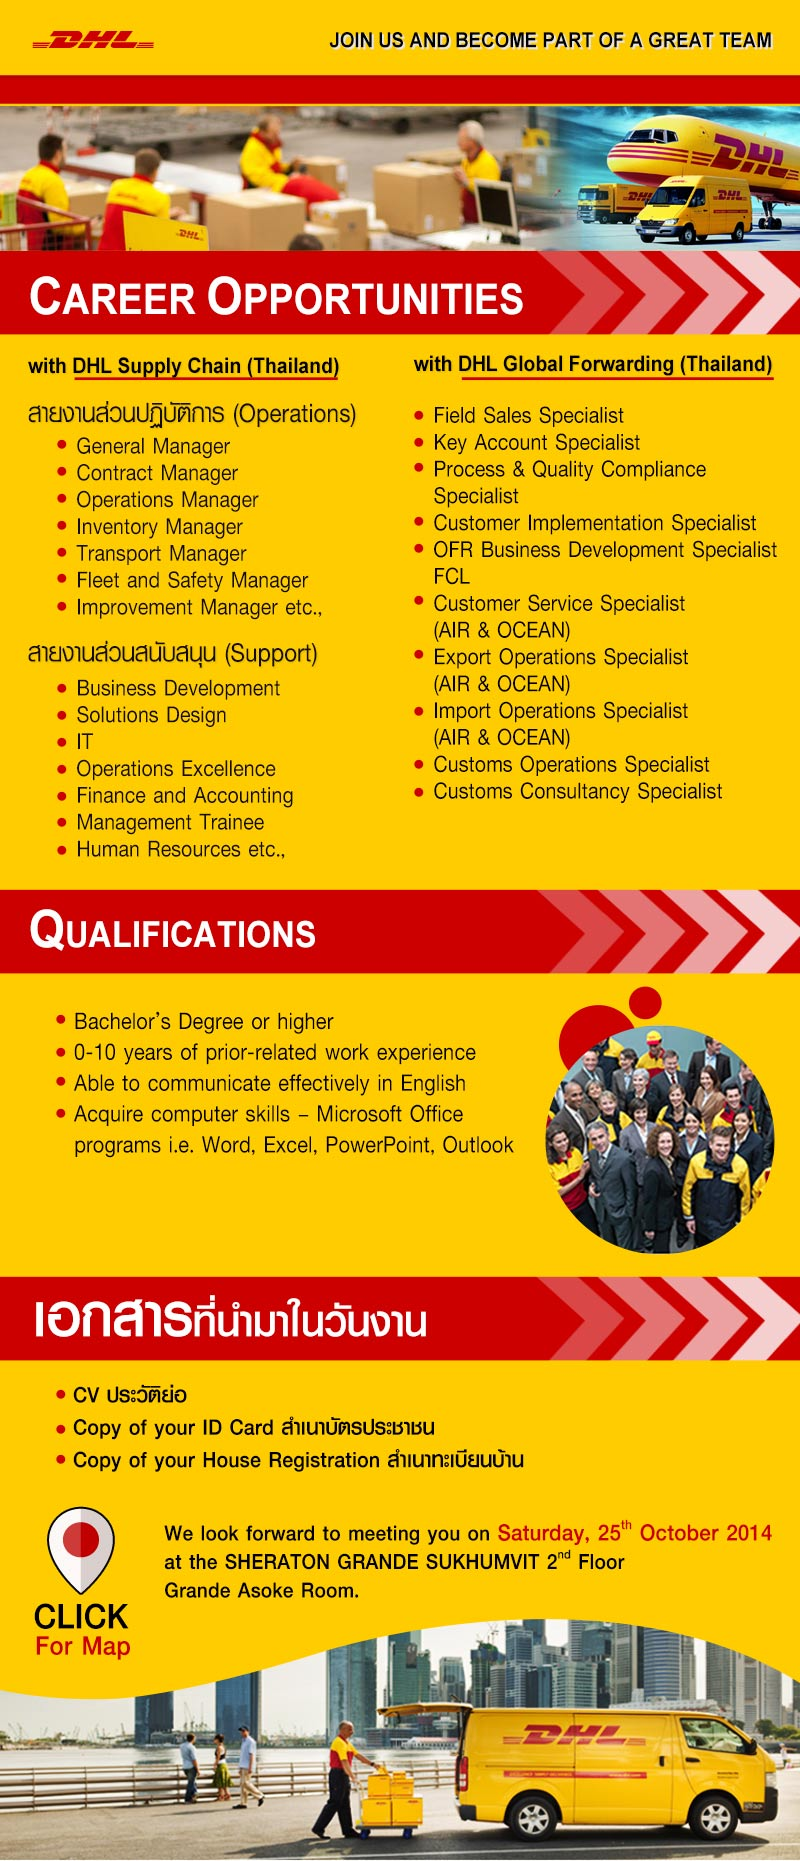 Career opportunities with DHL